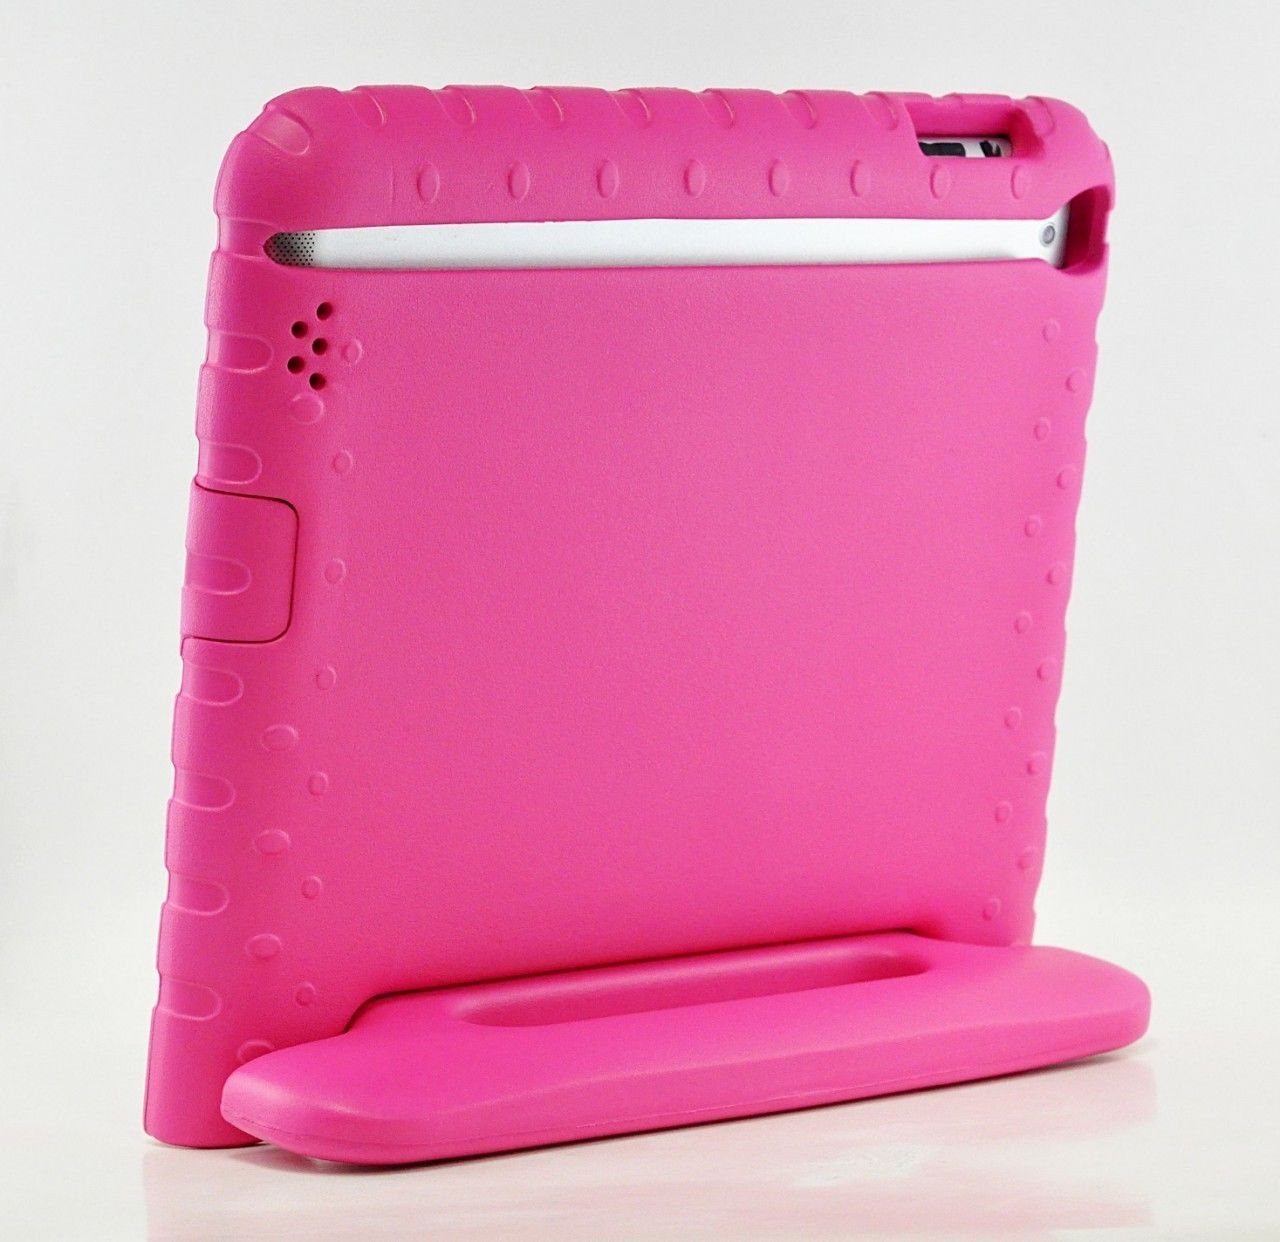 mini cases Shop for ipod mini case online at target free shipping on purchases over $35 and save 5% every day with your target redcard.